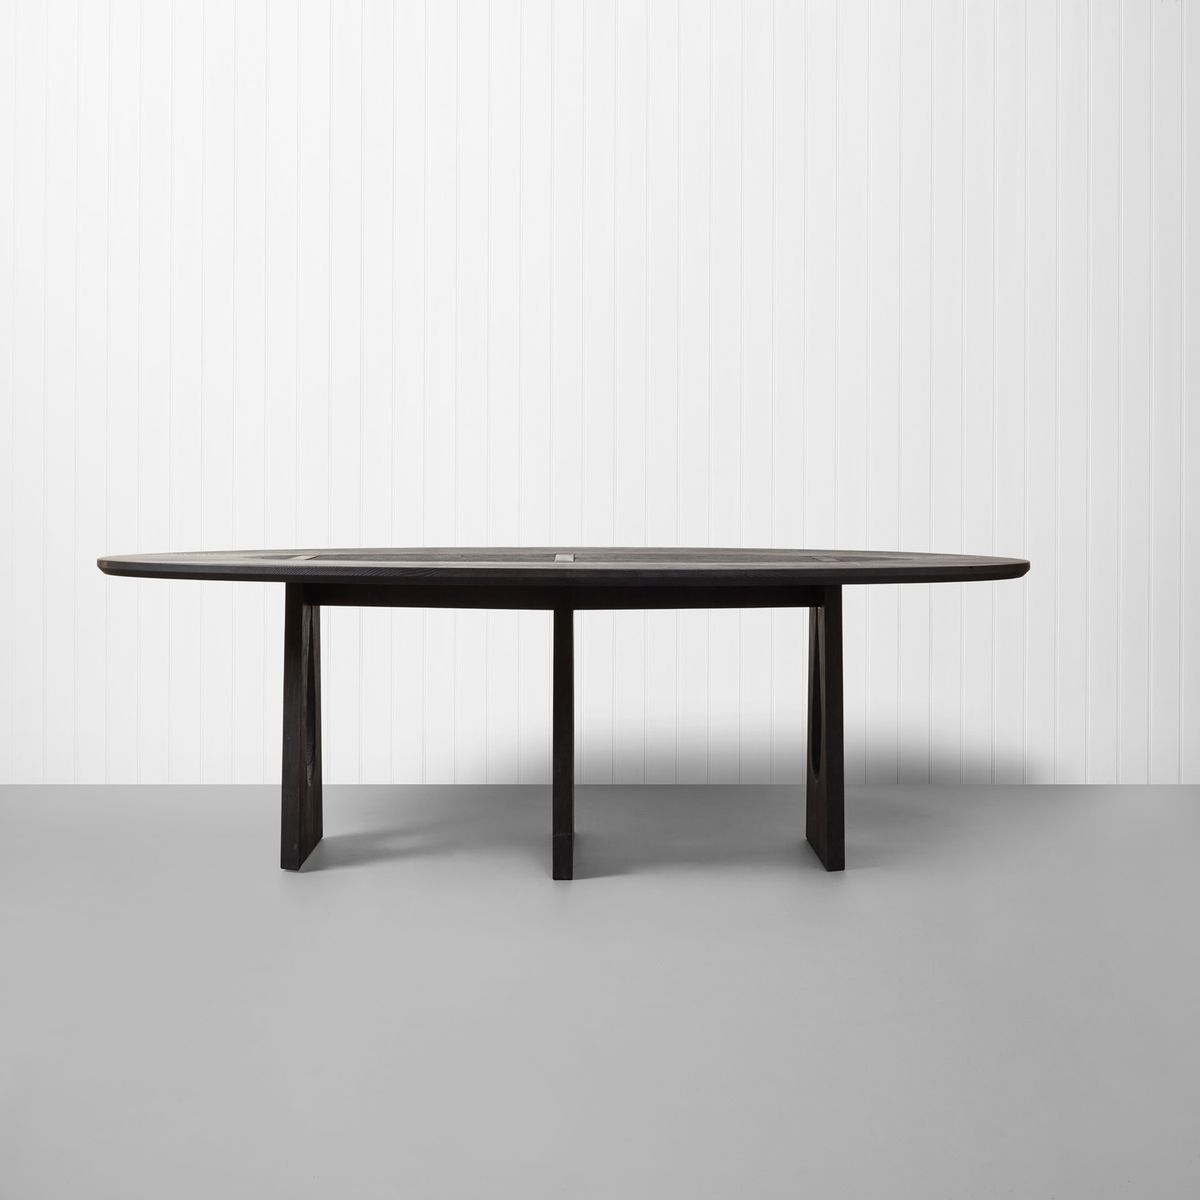 Scorched Ash Dining Table Esstisch von Sebastian Cox, 2017